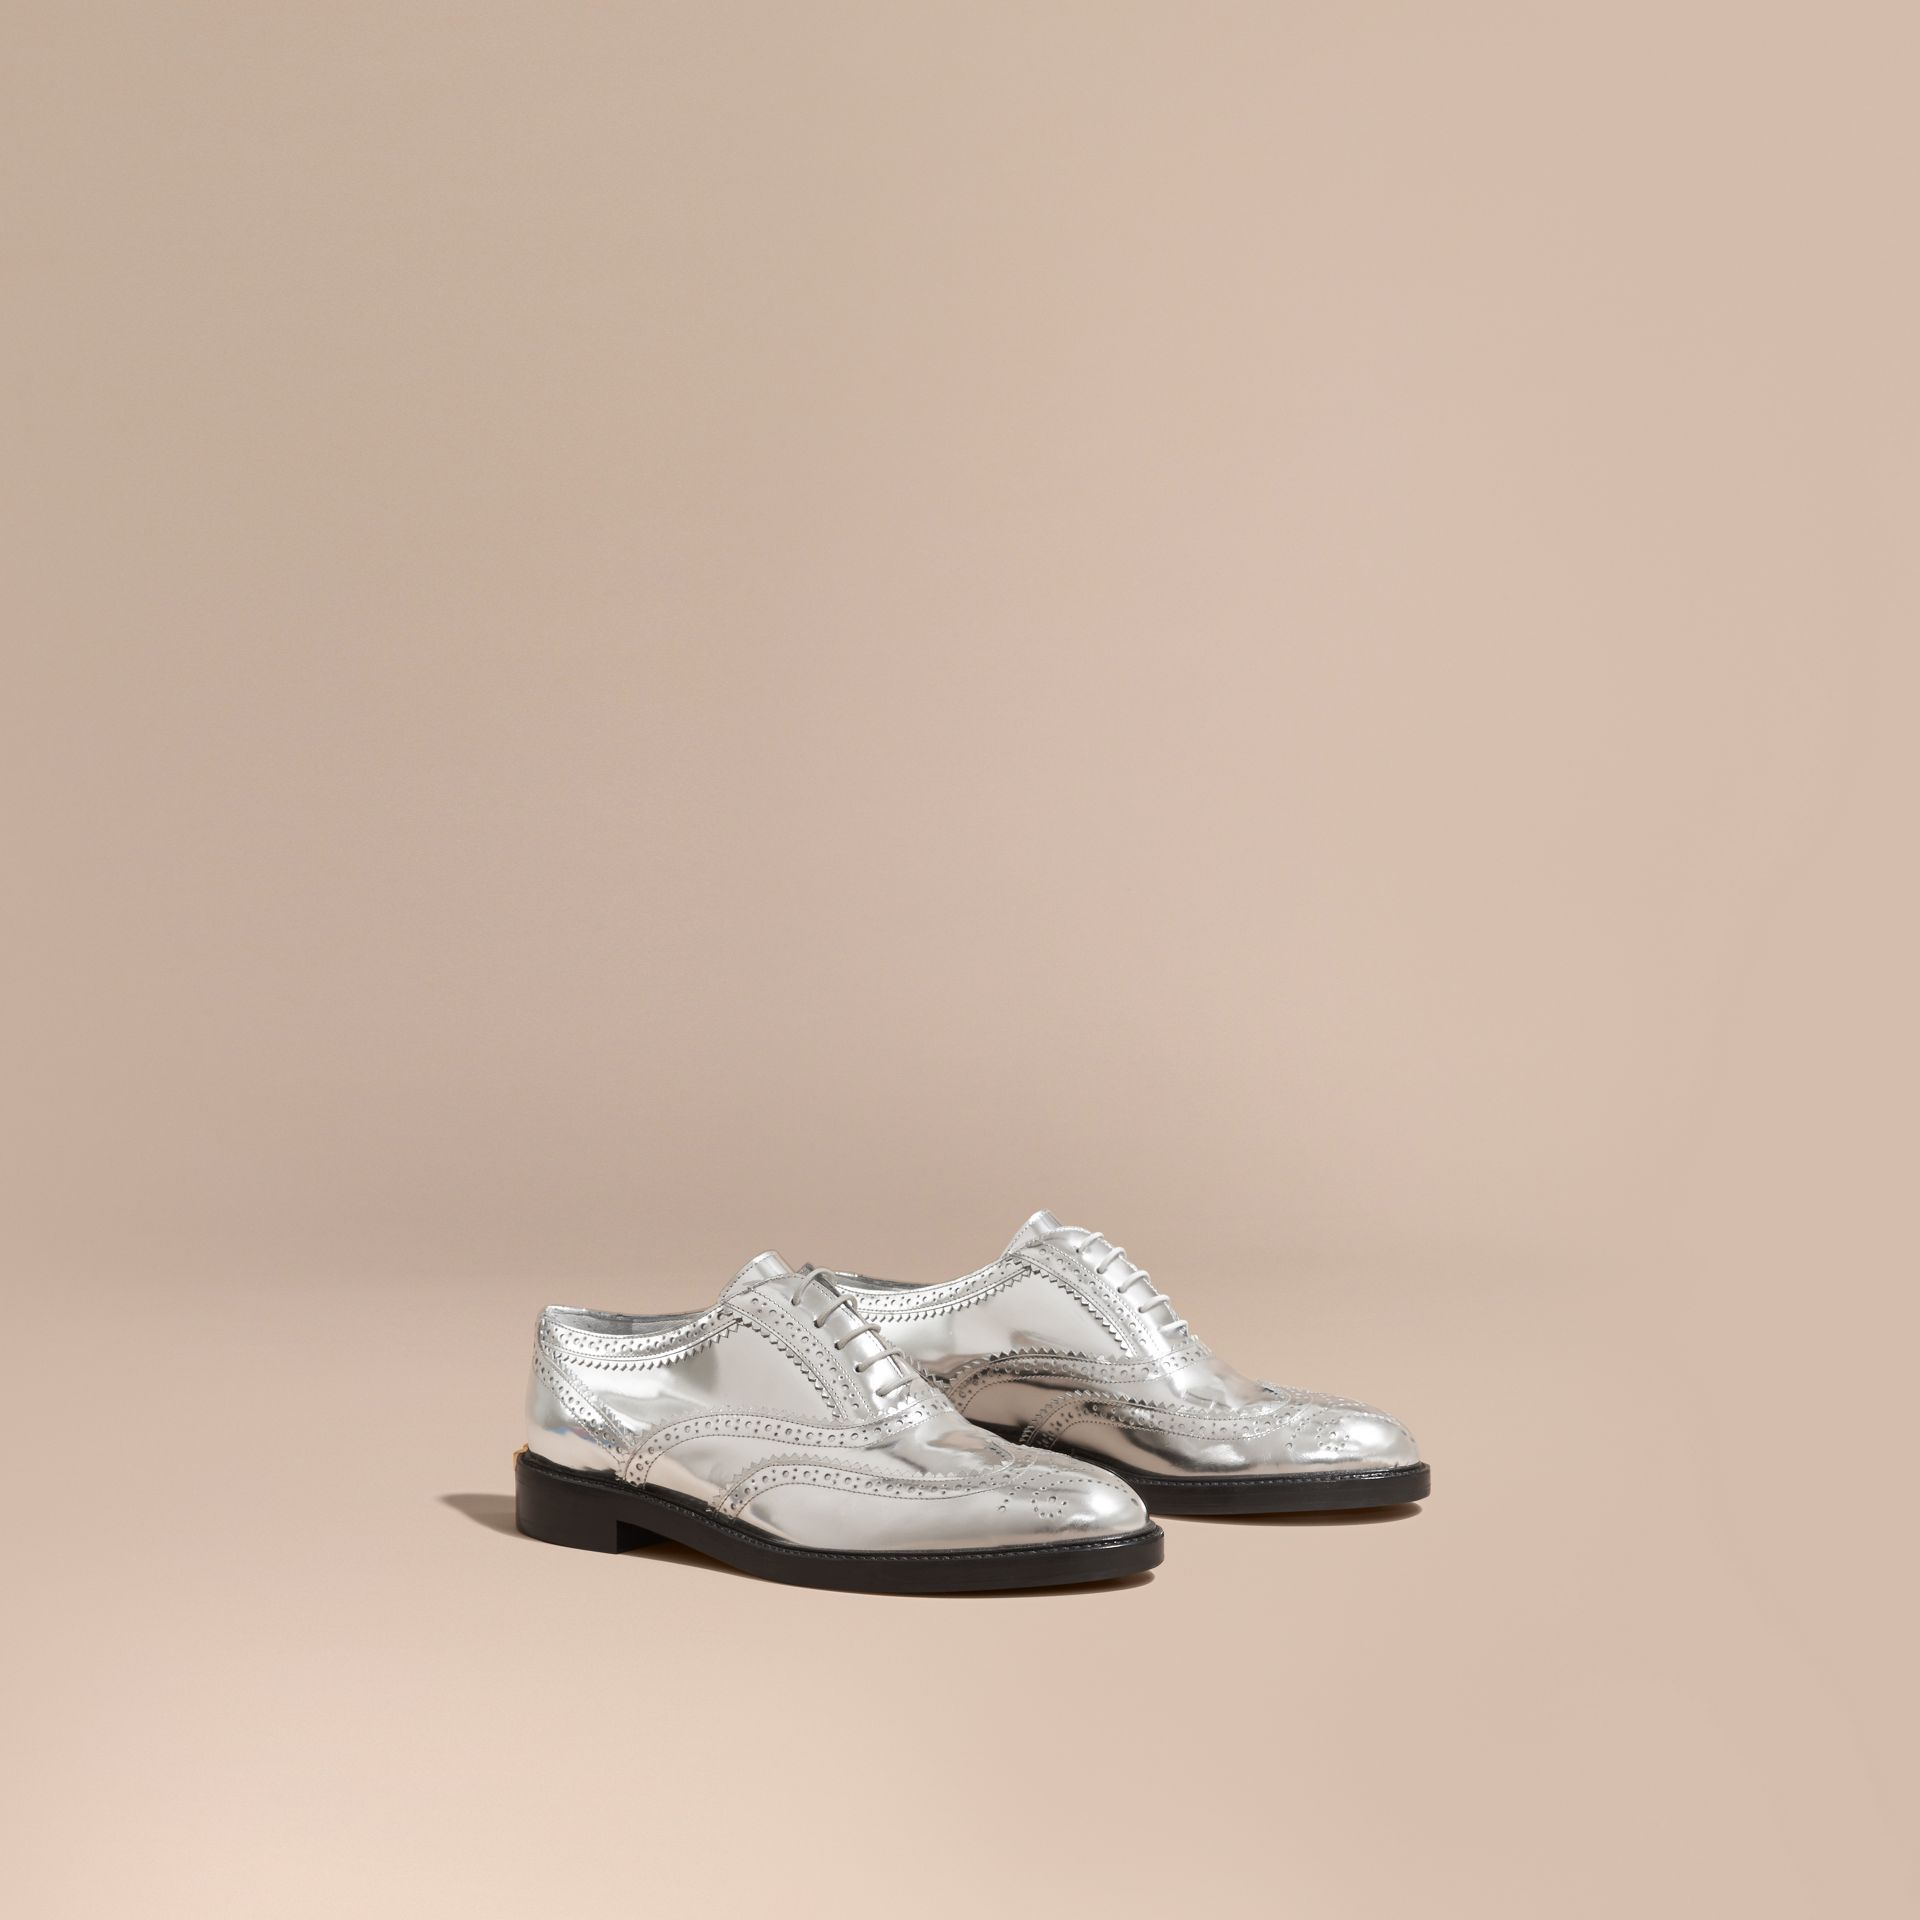 Silver Metallic Leather Wingtip Brogues Silver - gallery image 1